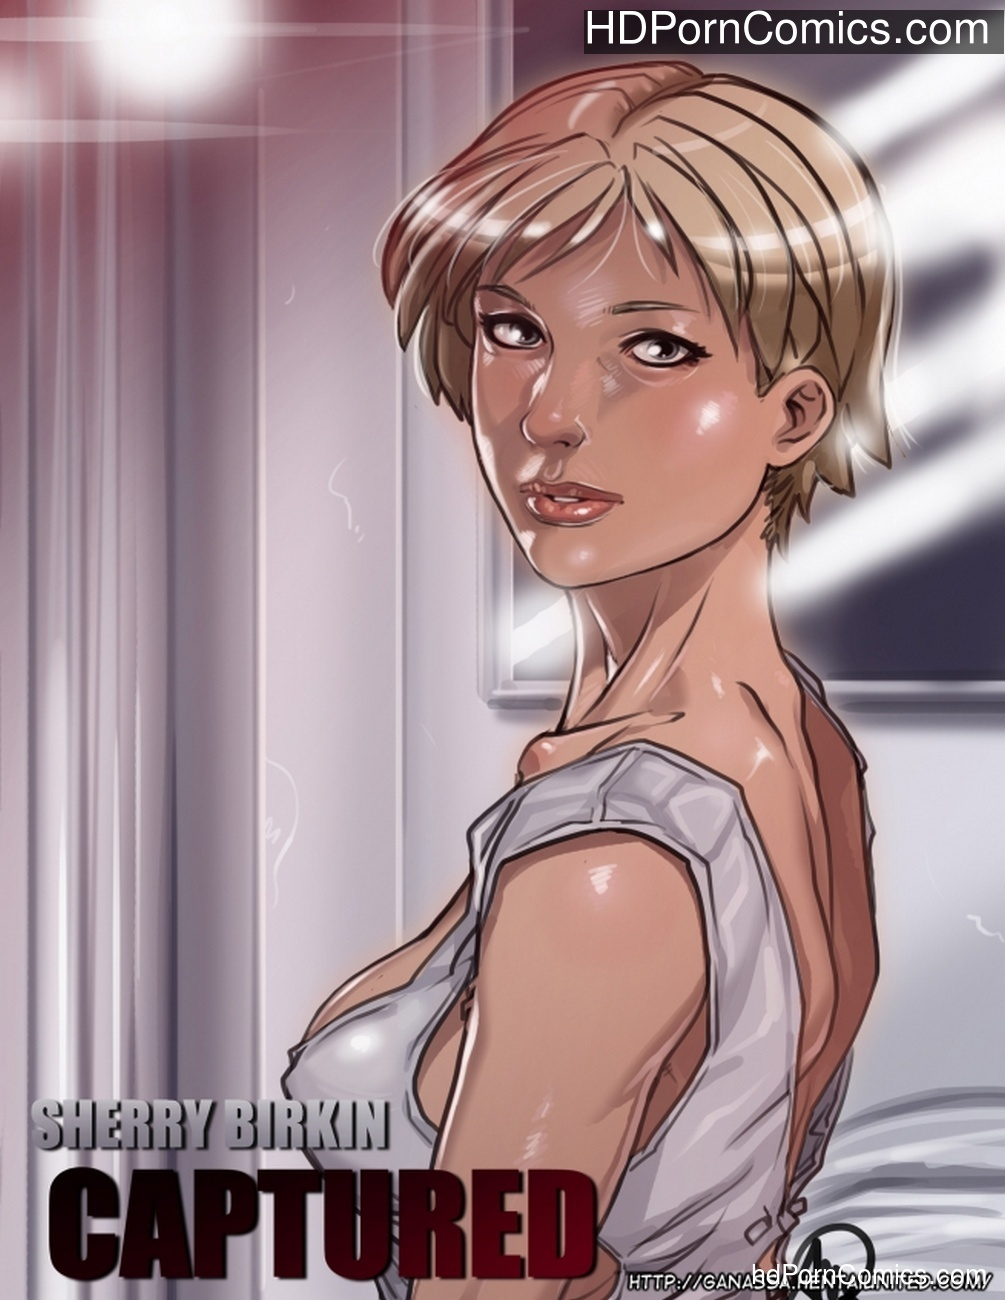 Sherry Birkin Captured 1 free sex comic